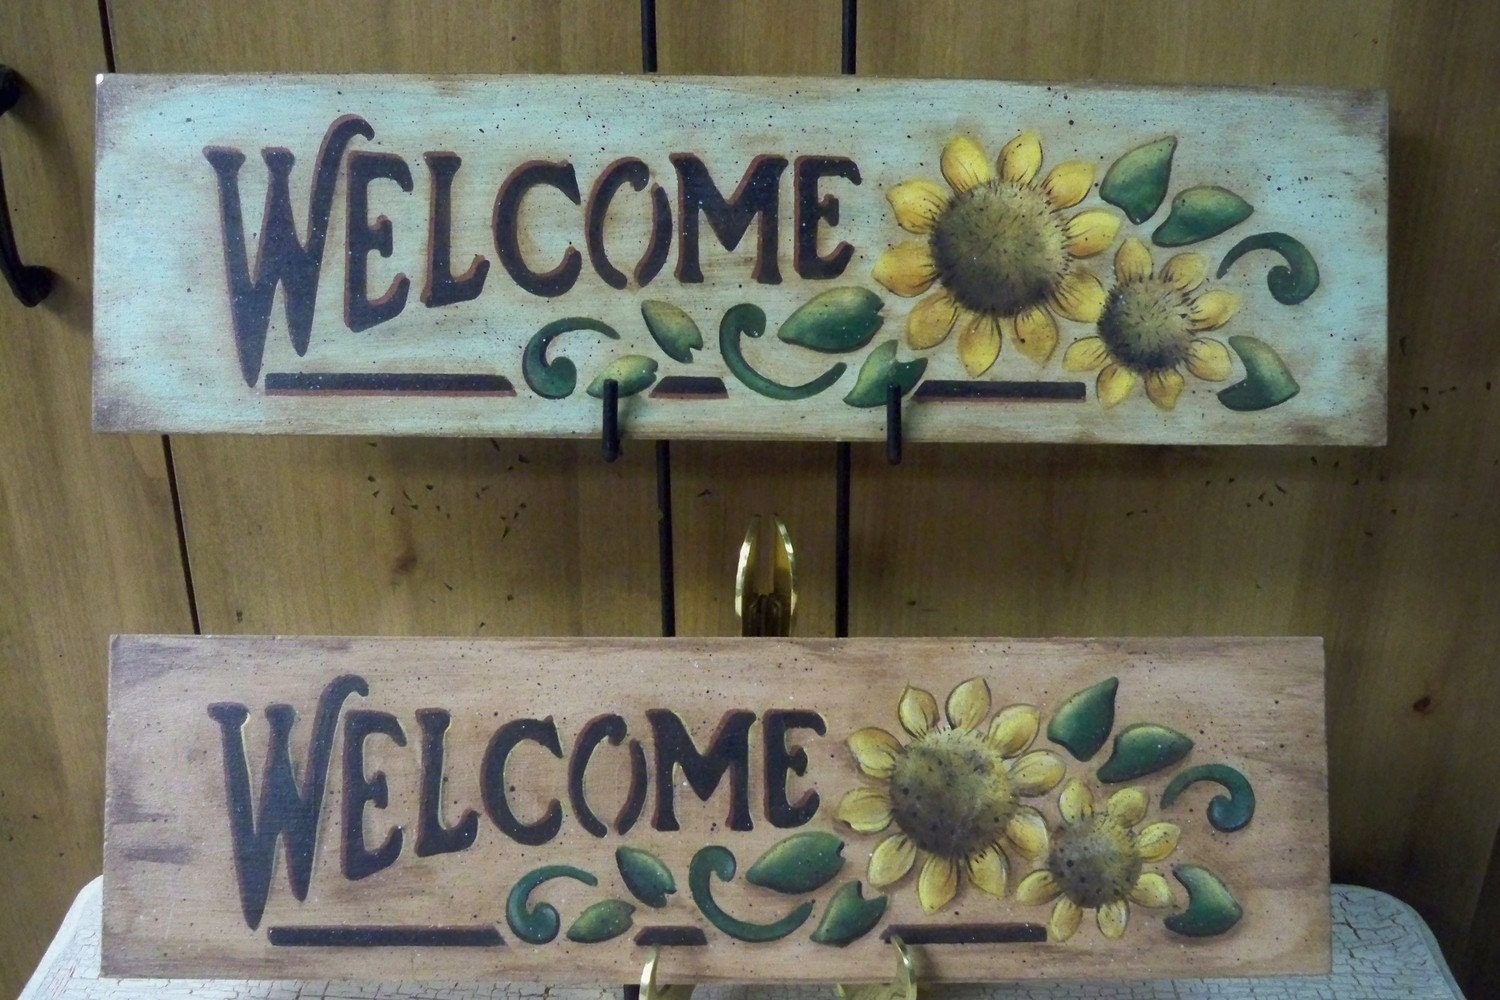 Wooden Welcome Sunflower Sign Hand Painted. Door Hanger Signs. Breakout Edu Signs. Shaped Signs Of Stroke. Forklift Signs. Negative Tb Signs. Mthfr Gene Mutation Signs. Cue Card Autism Signs. Physical Attribute Signs